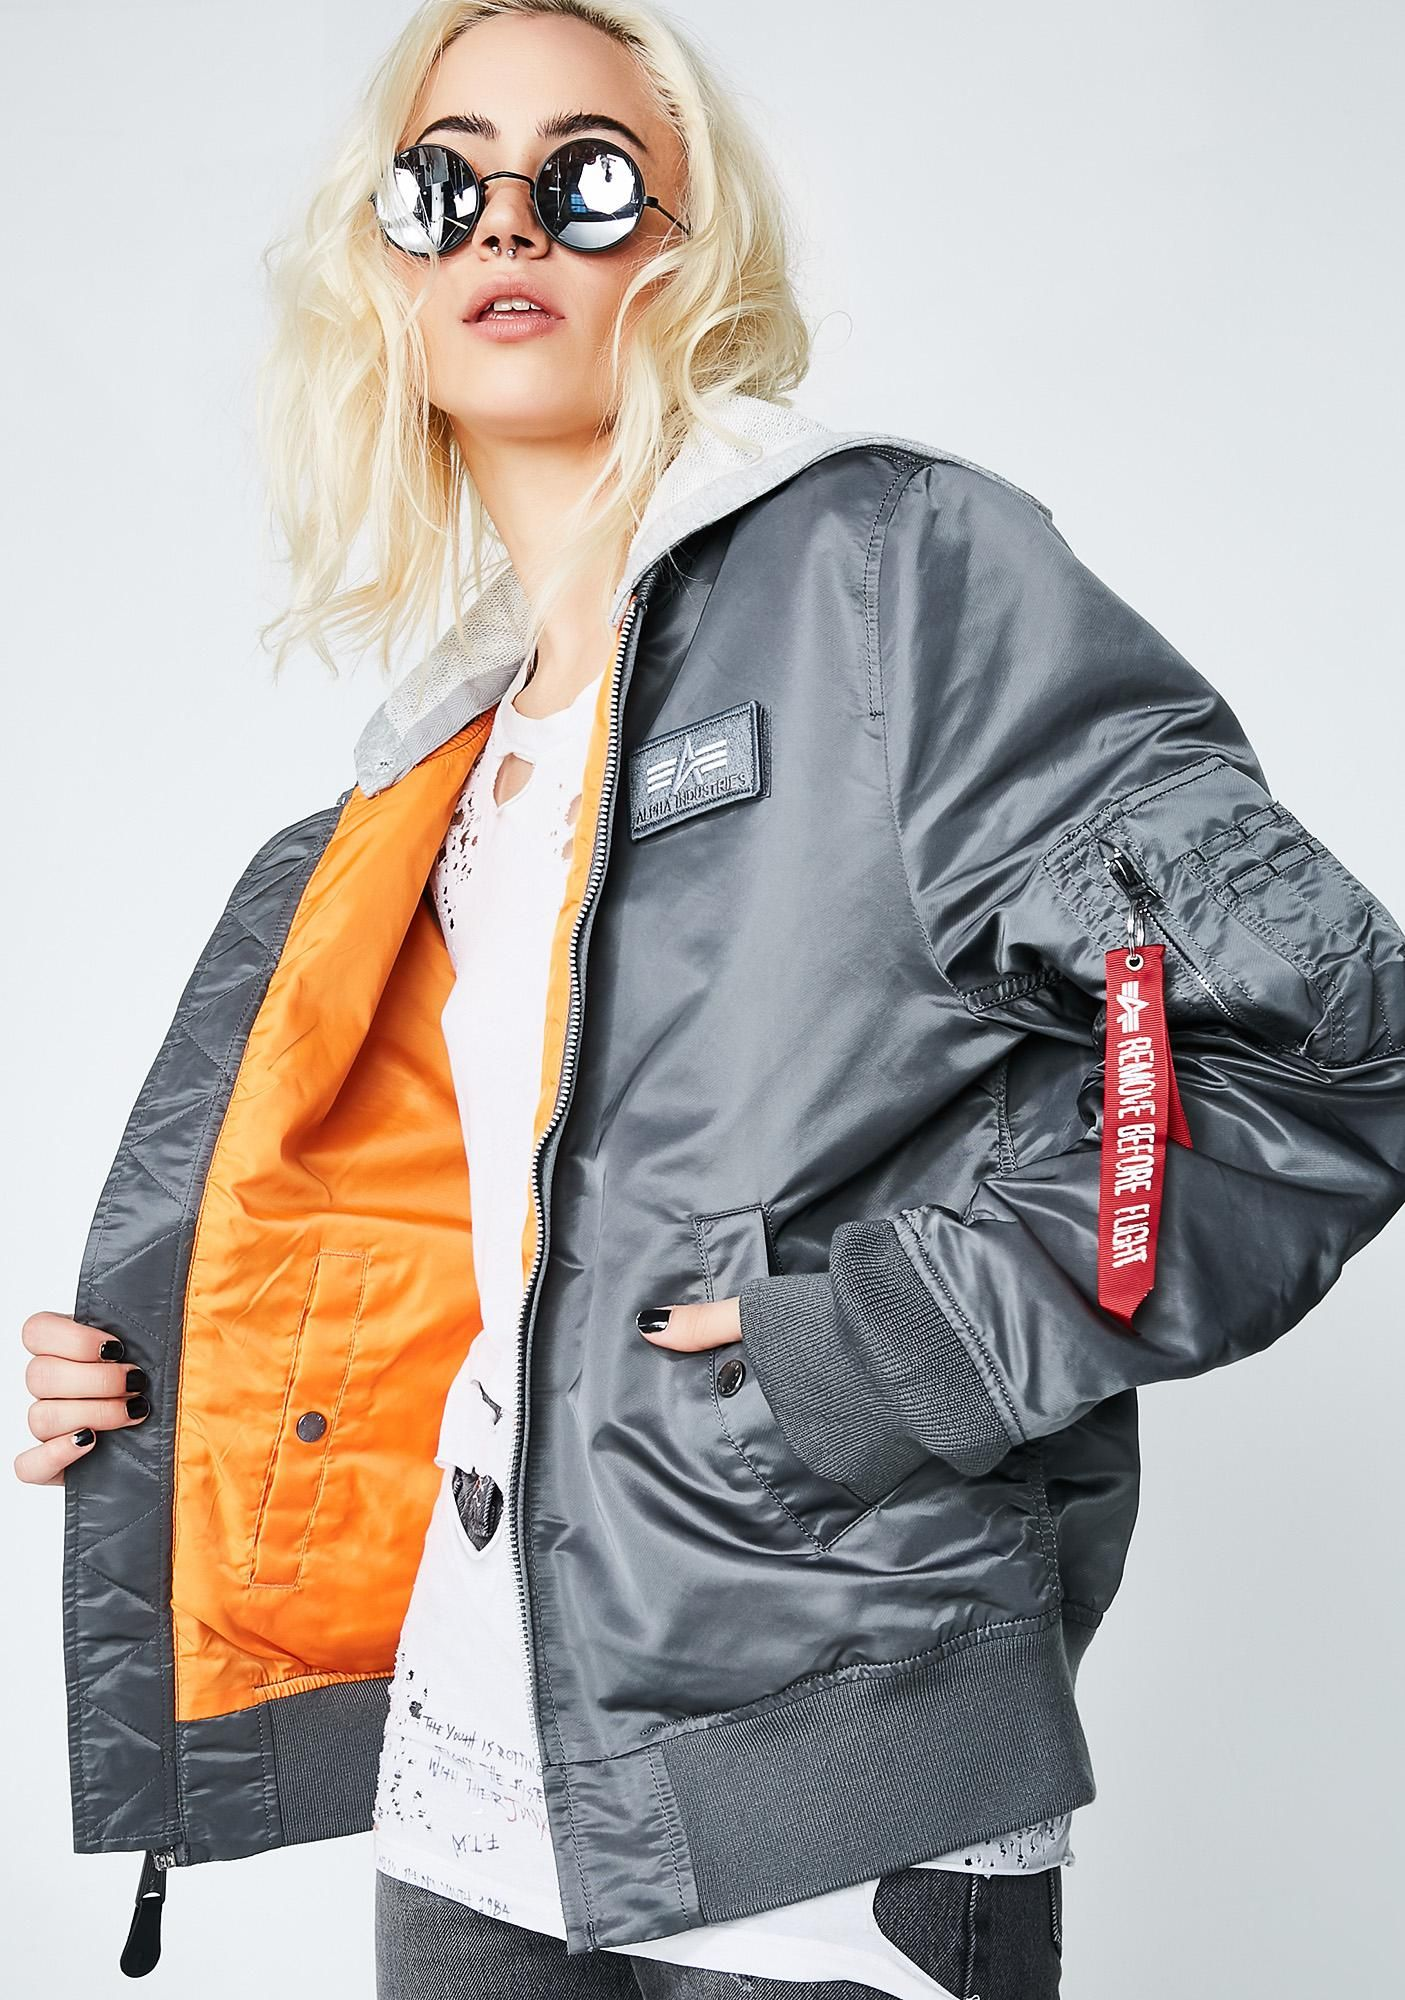 ff6b6242f L-2B Hooded Bomber Jacket in 2019 | things: miscellany | Hooded ...